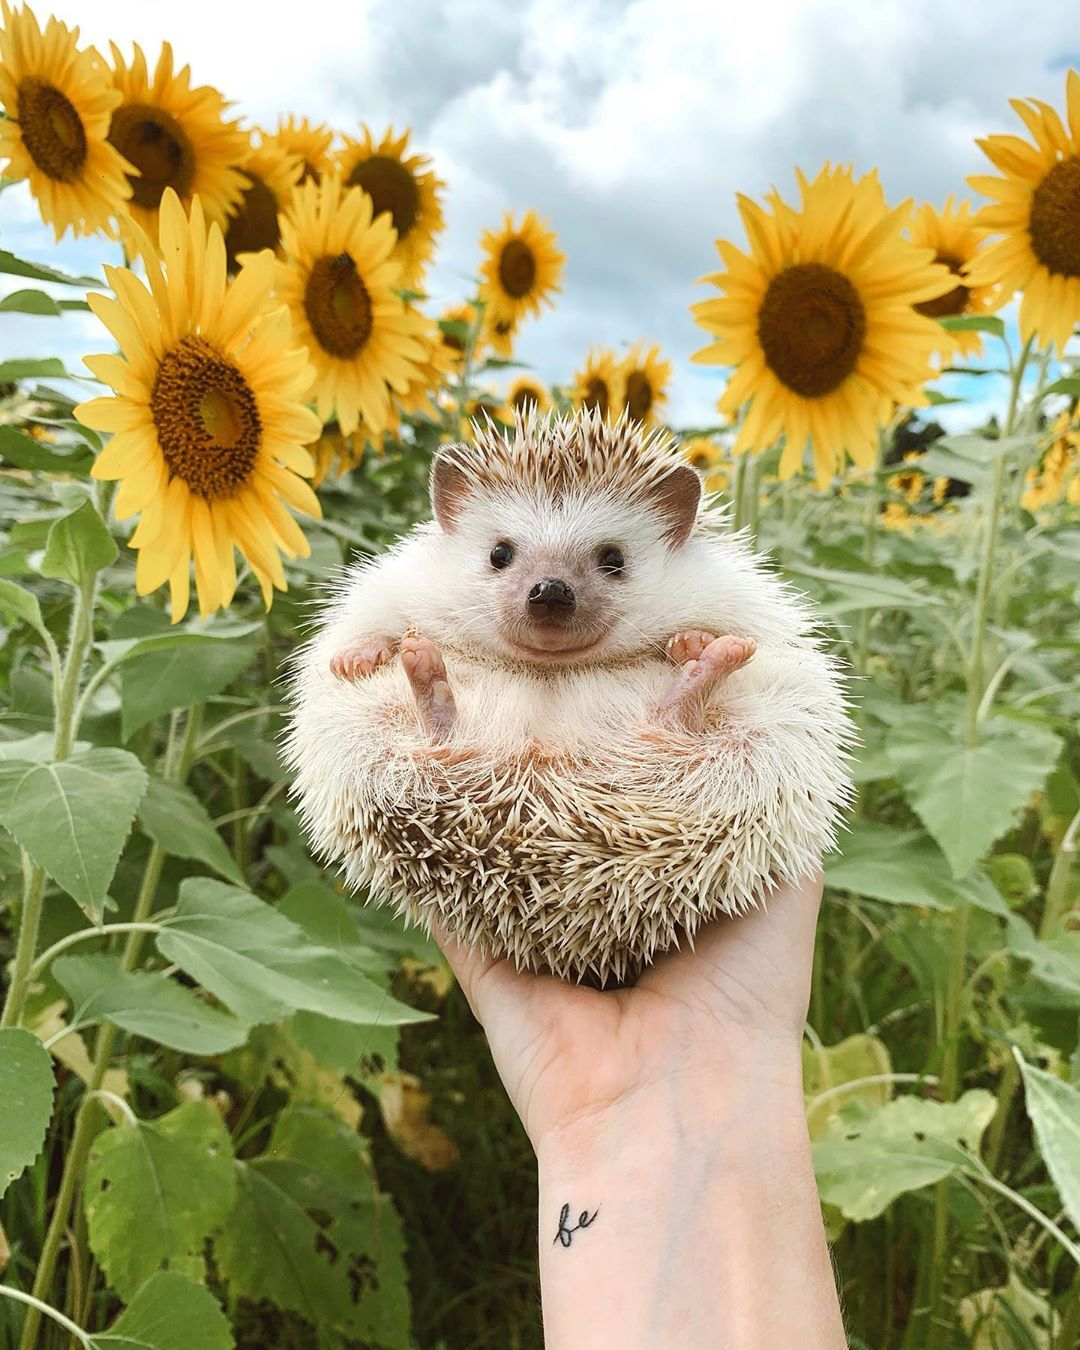 22 Animal Instagram Accounts You Have to Follow - Cute Animal Photos